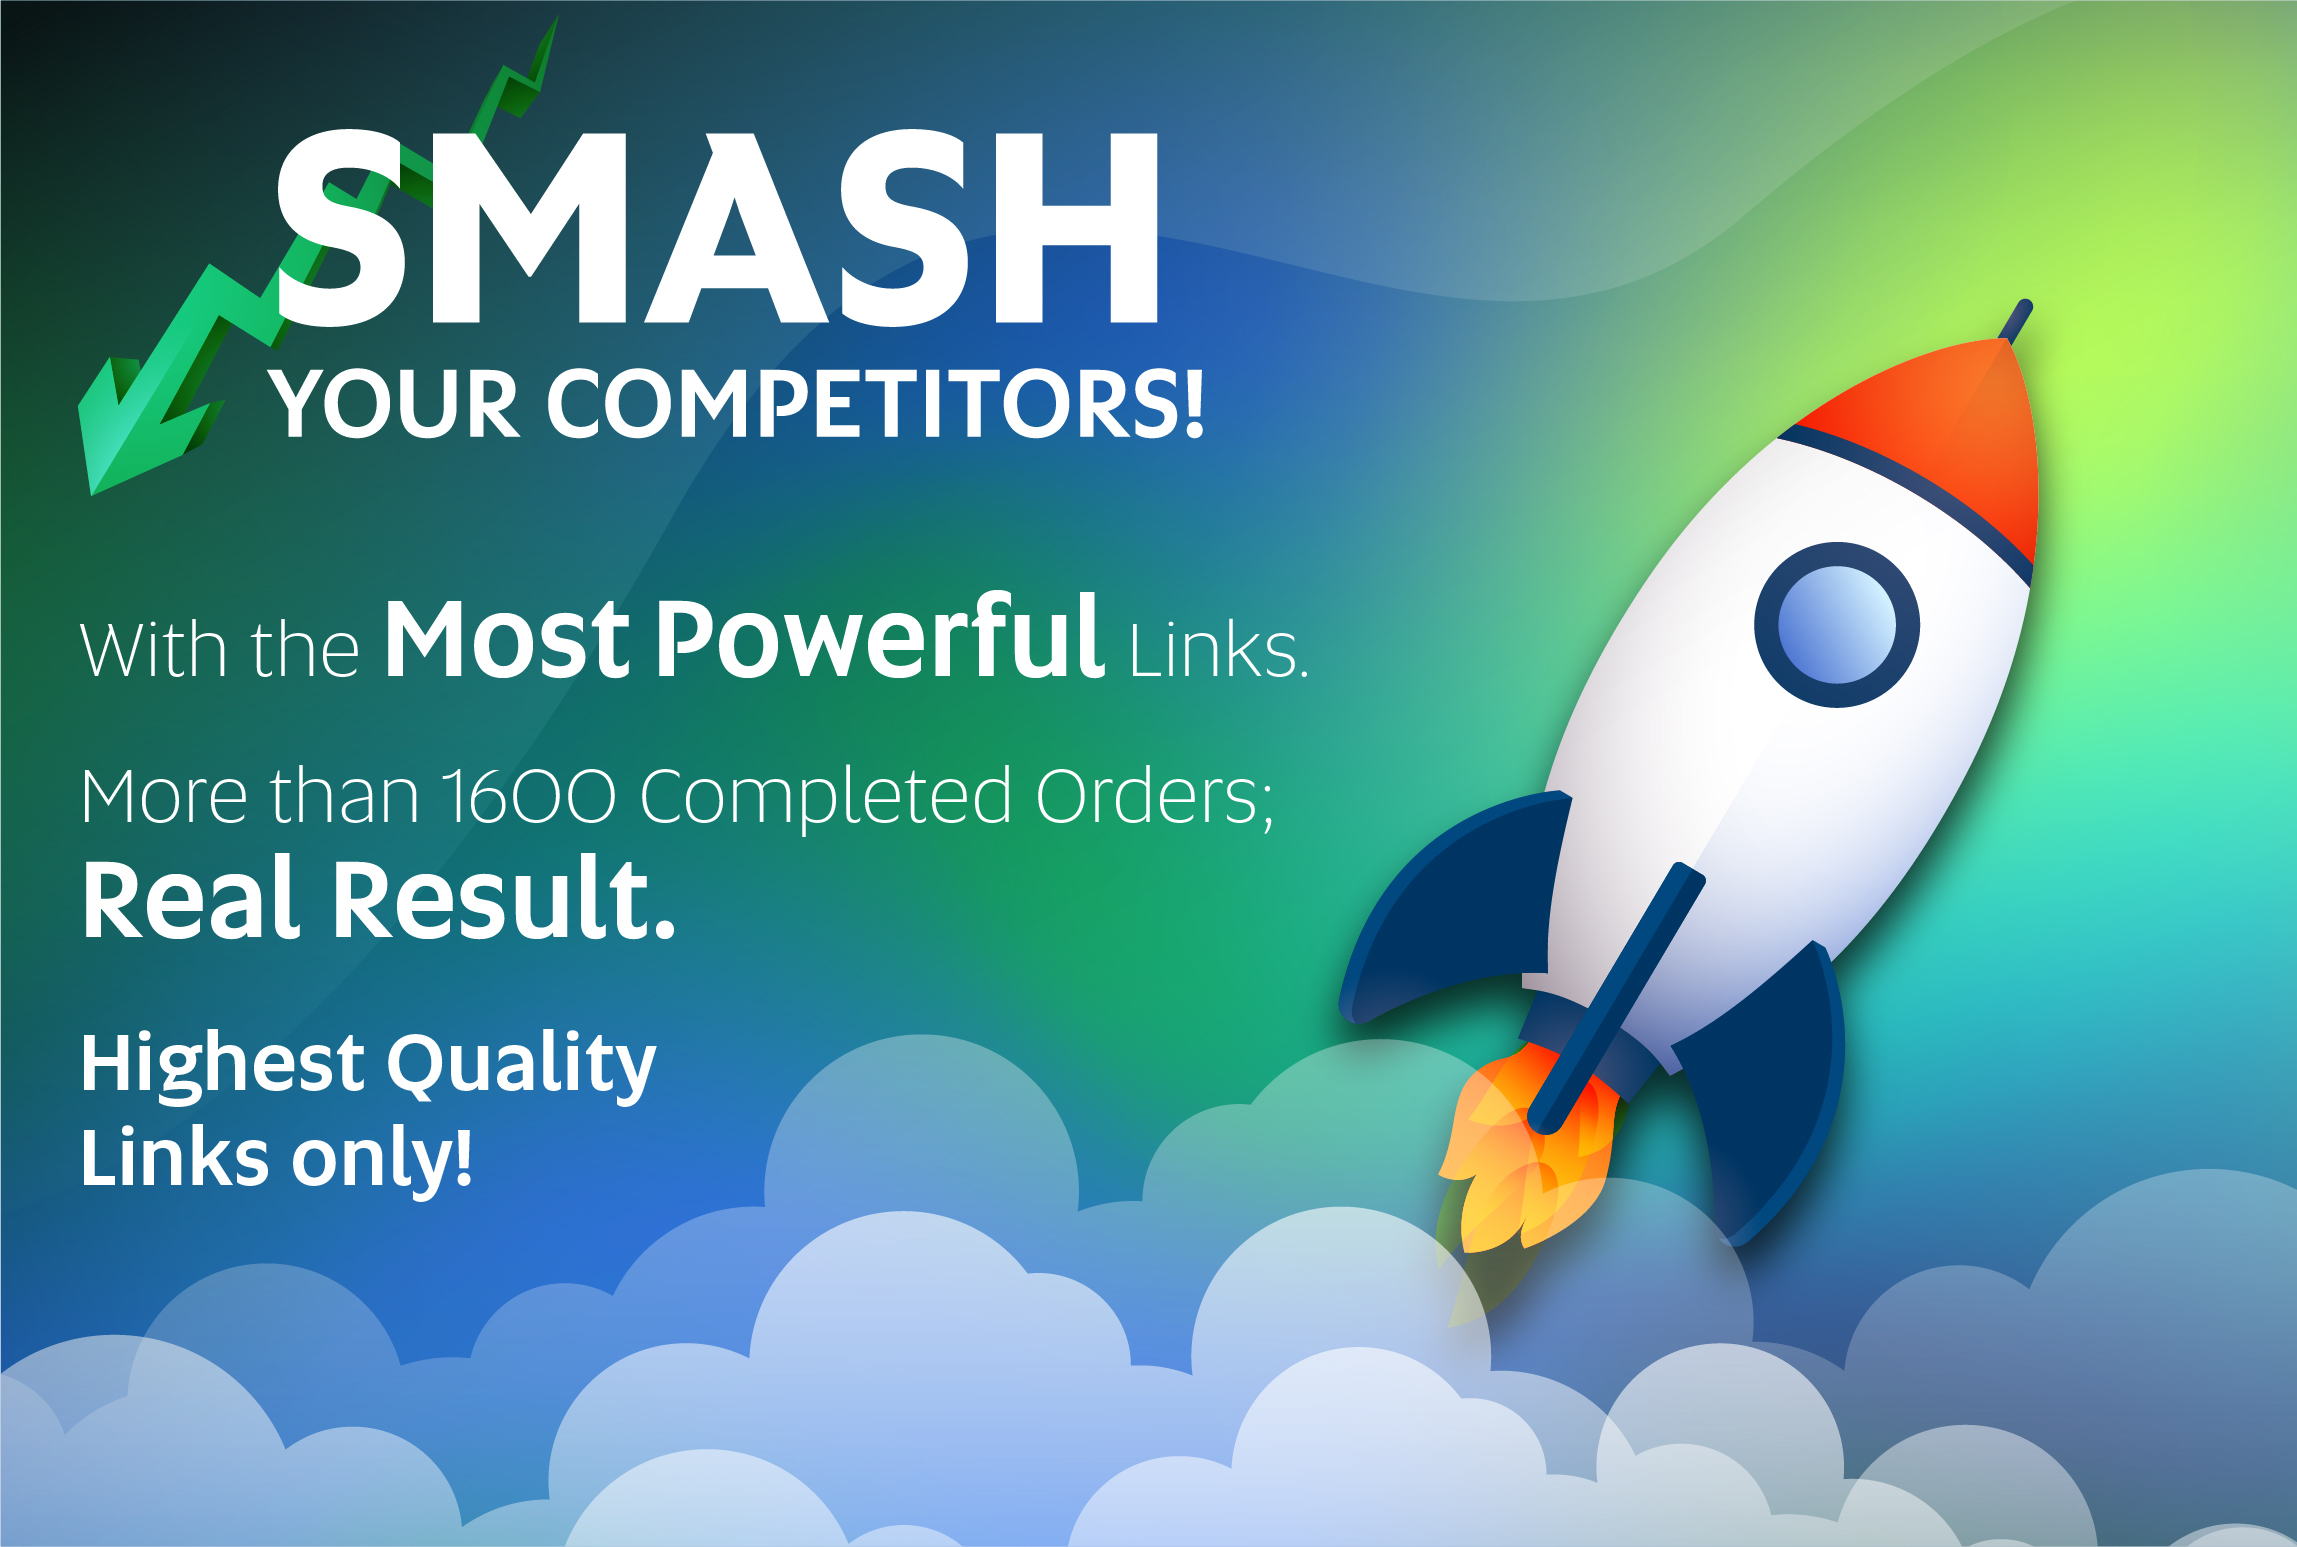 Smash your Competitors With the MOST Powerful LINKS